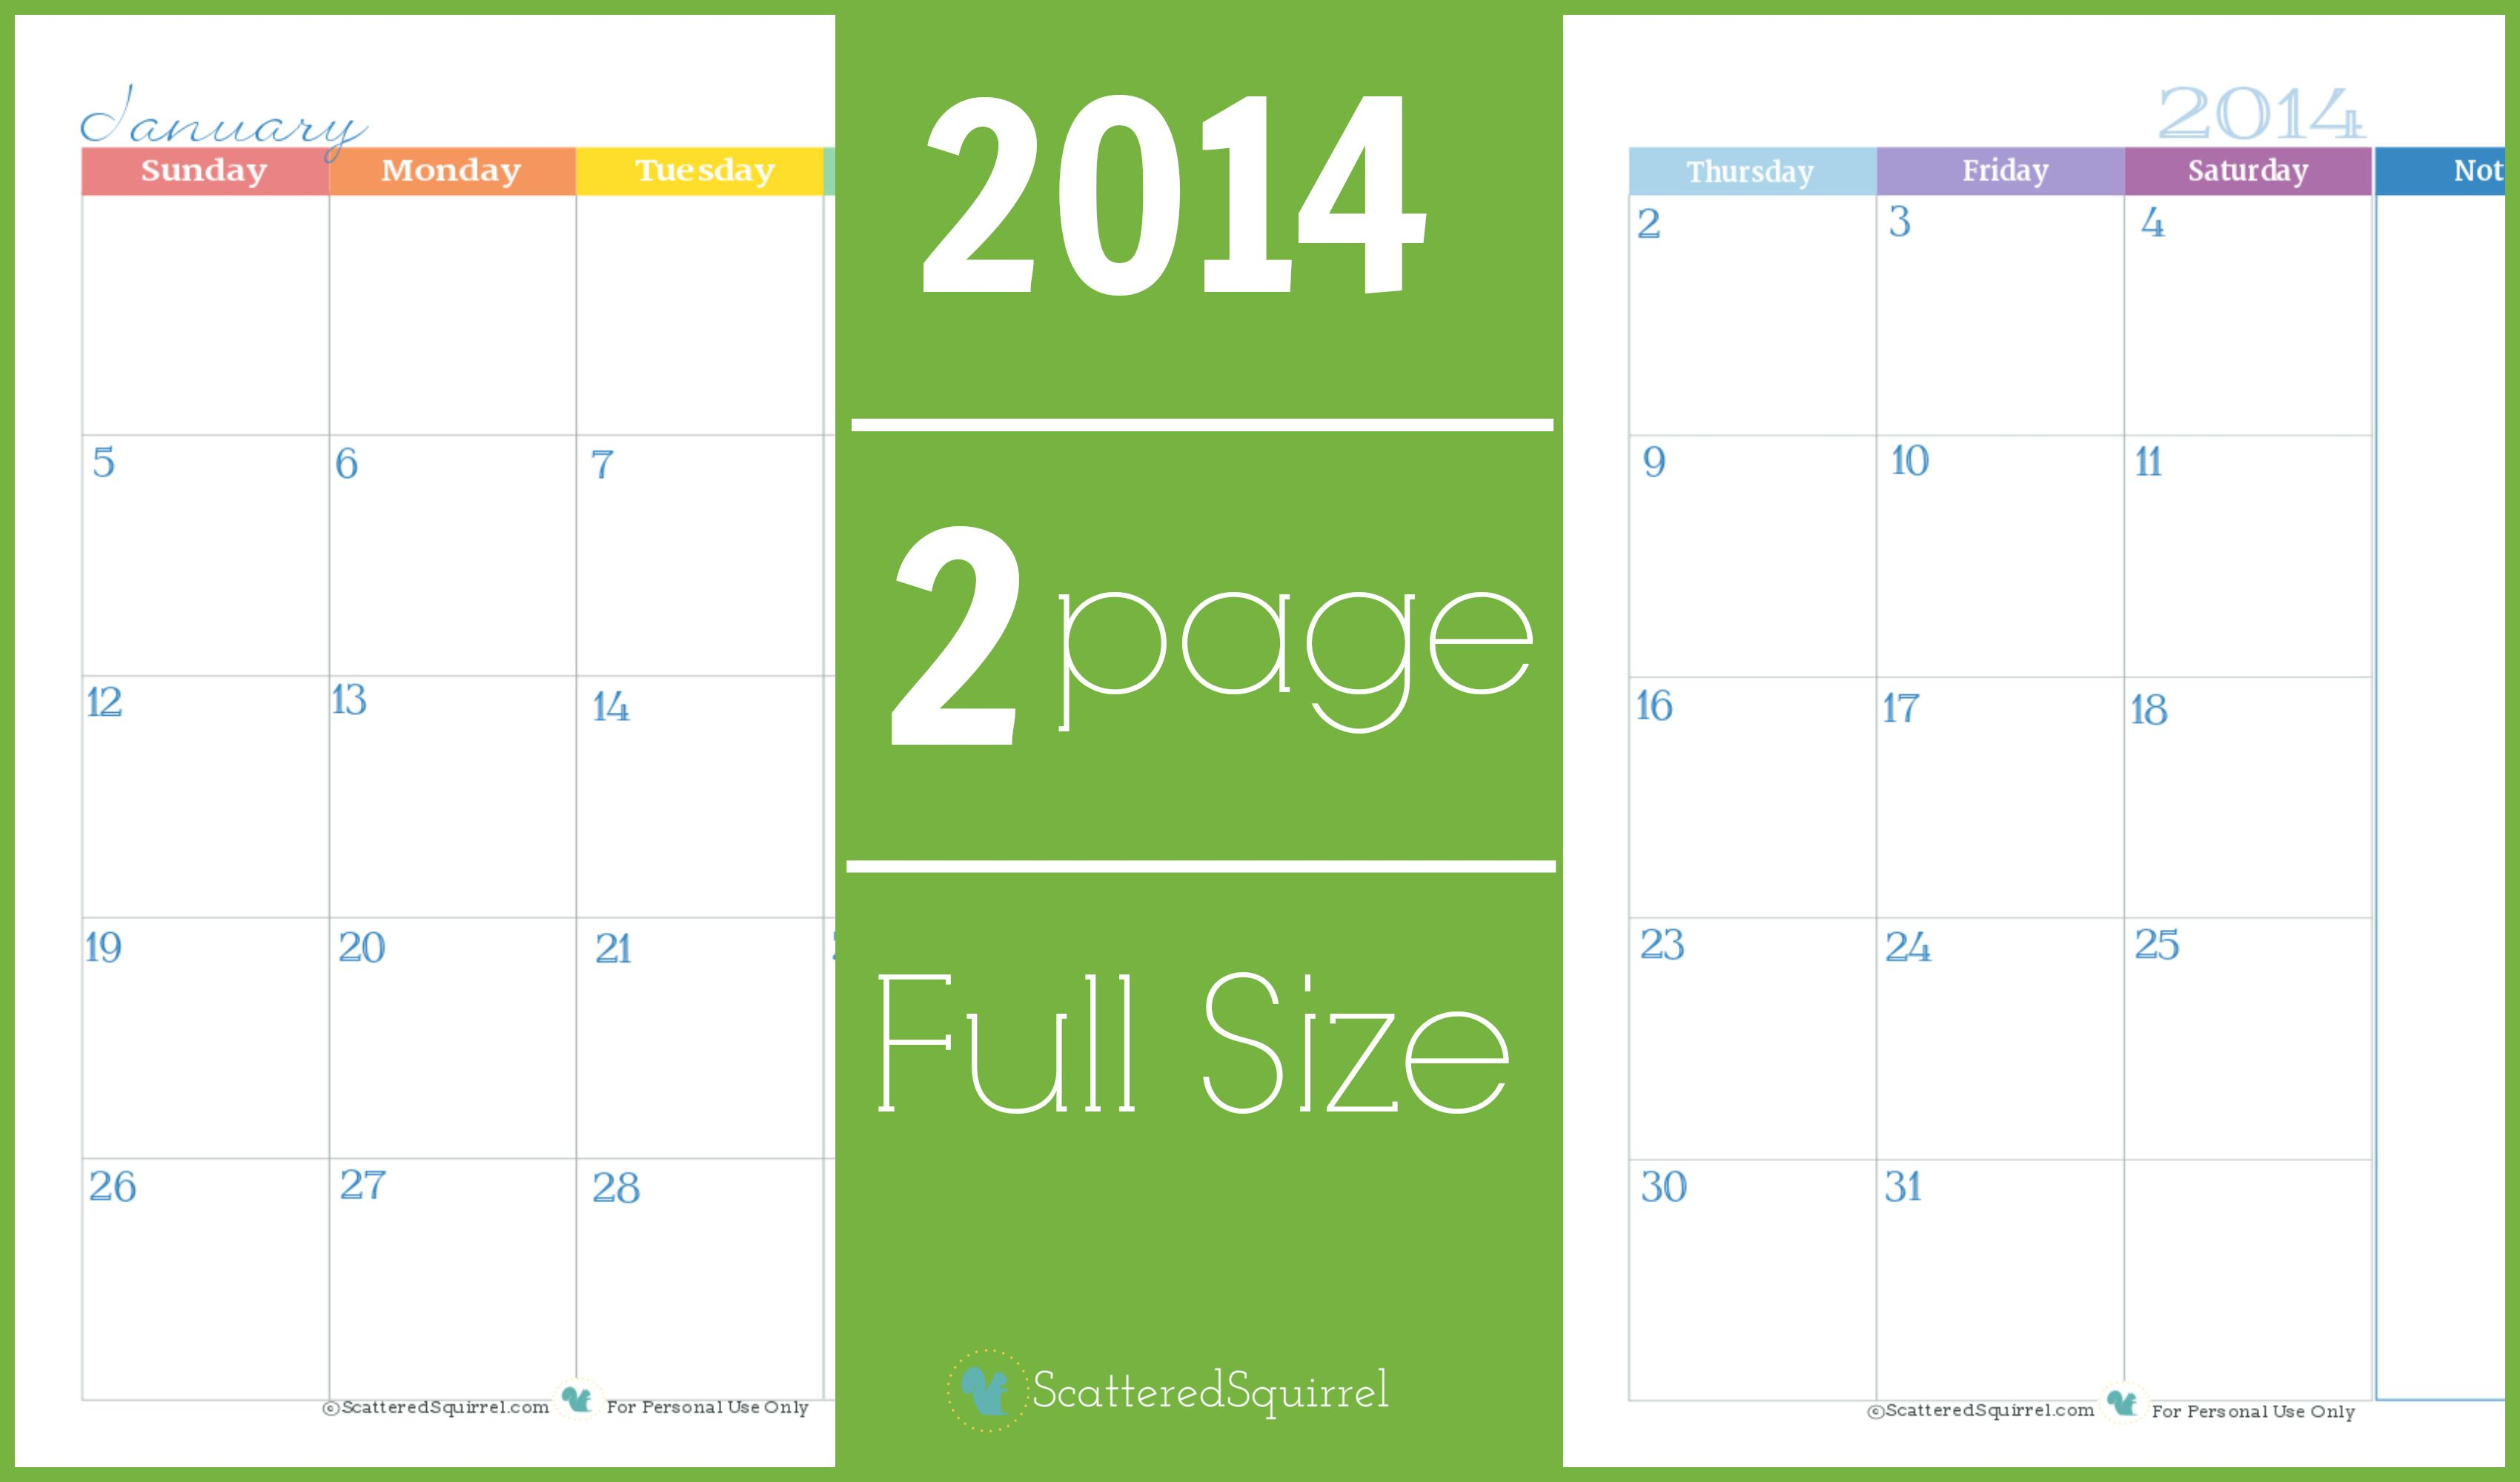 2014 Calendar: Two Page Monthly | Calendar Organization in Scattered Squirrel Calendar